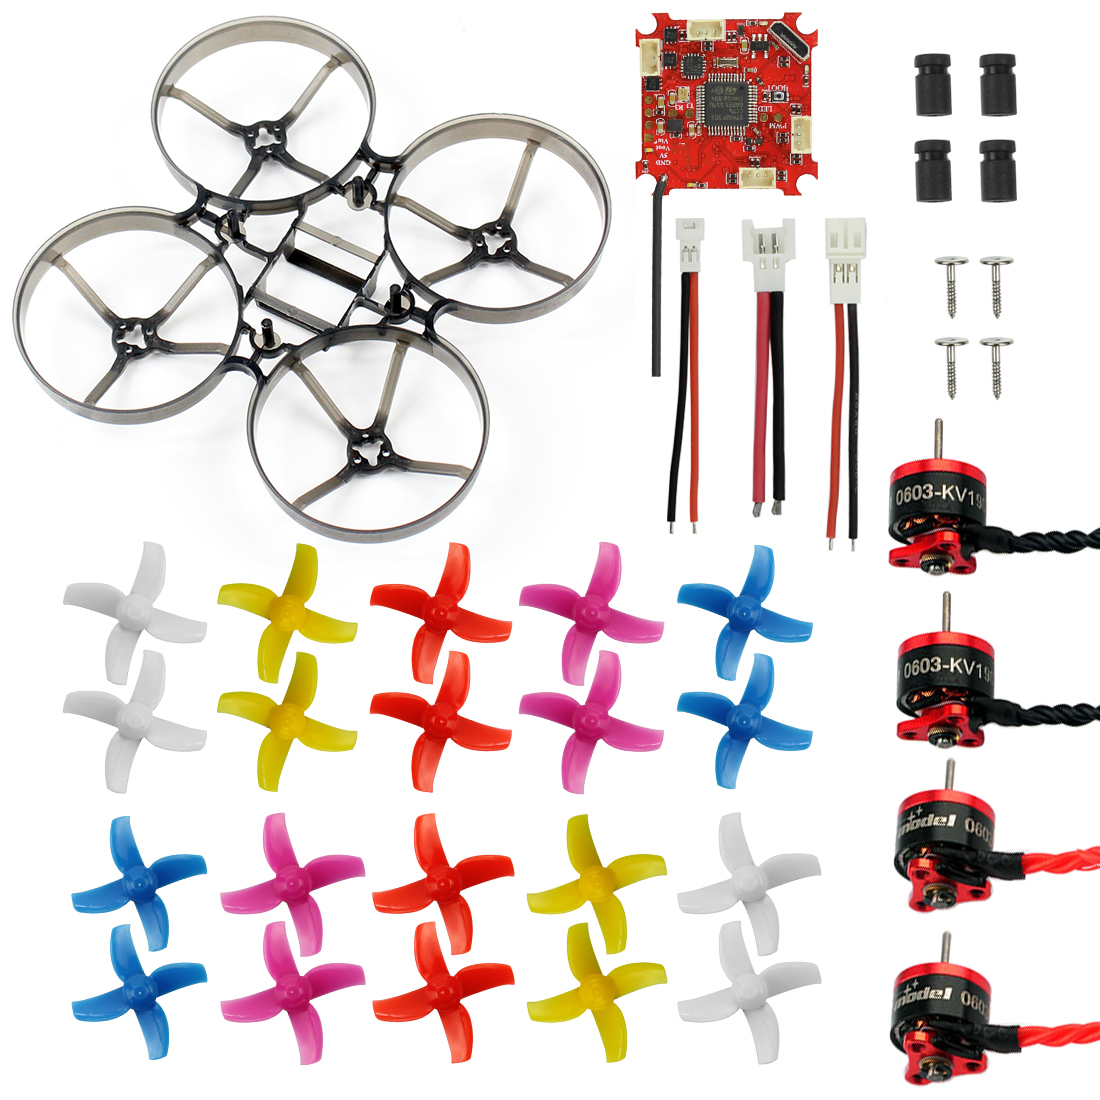 JMT Indoor FPV Racing Drone Parts Brushless WhoopFrame with props SE0603 Motor